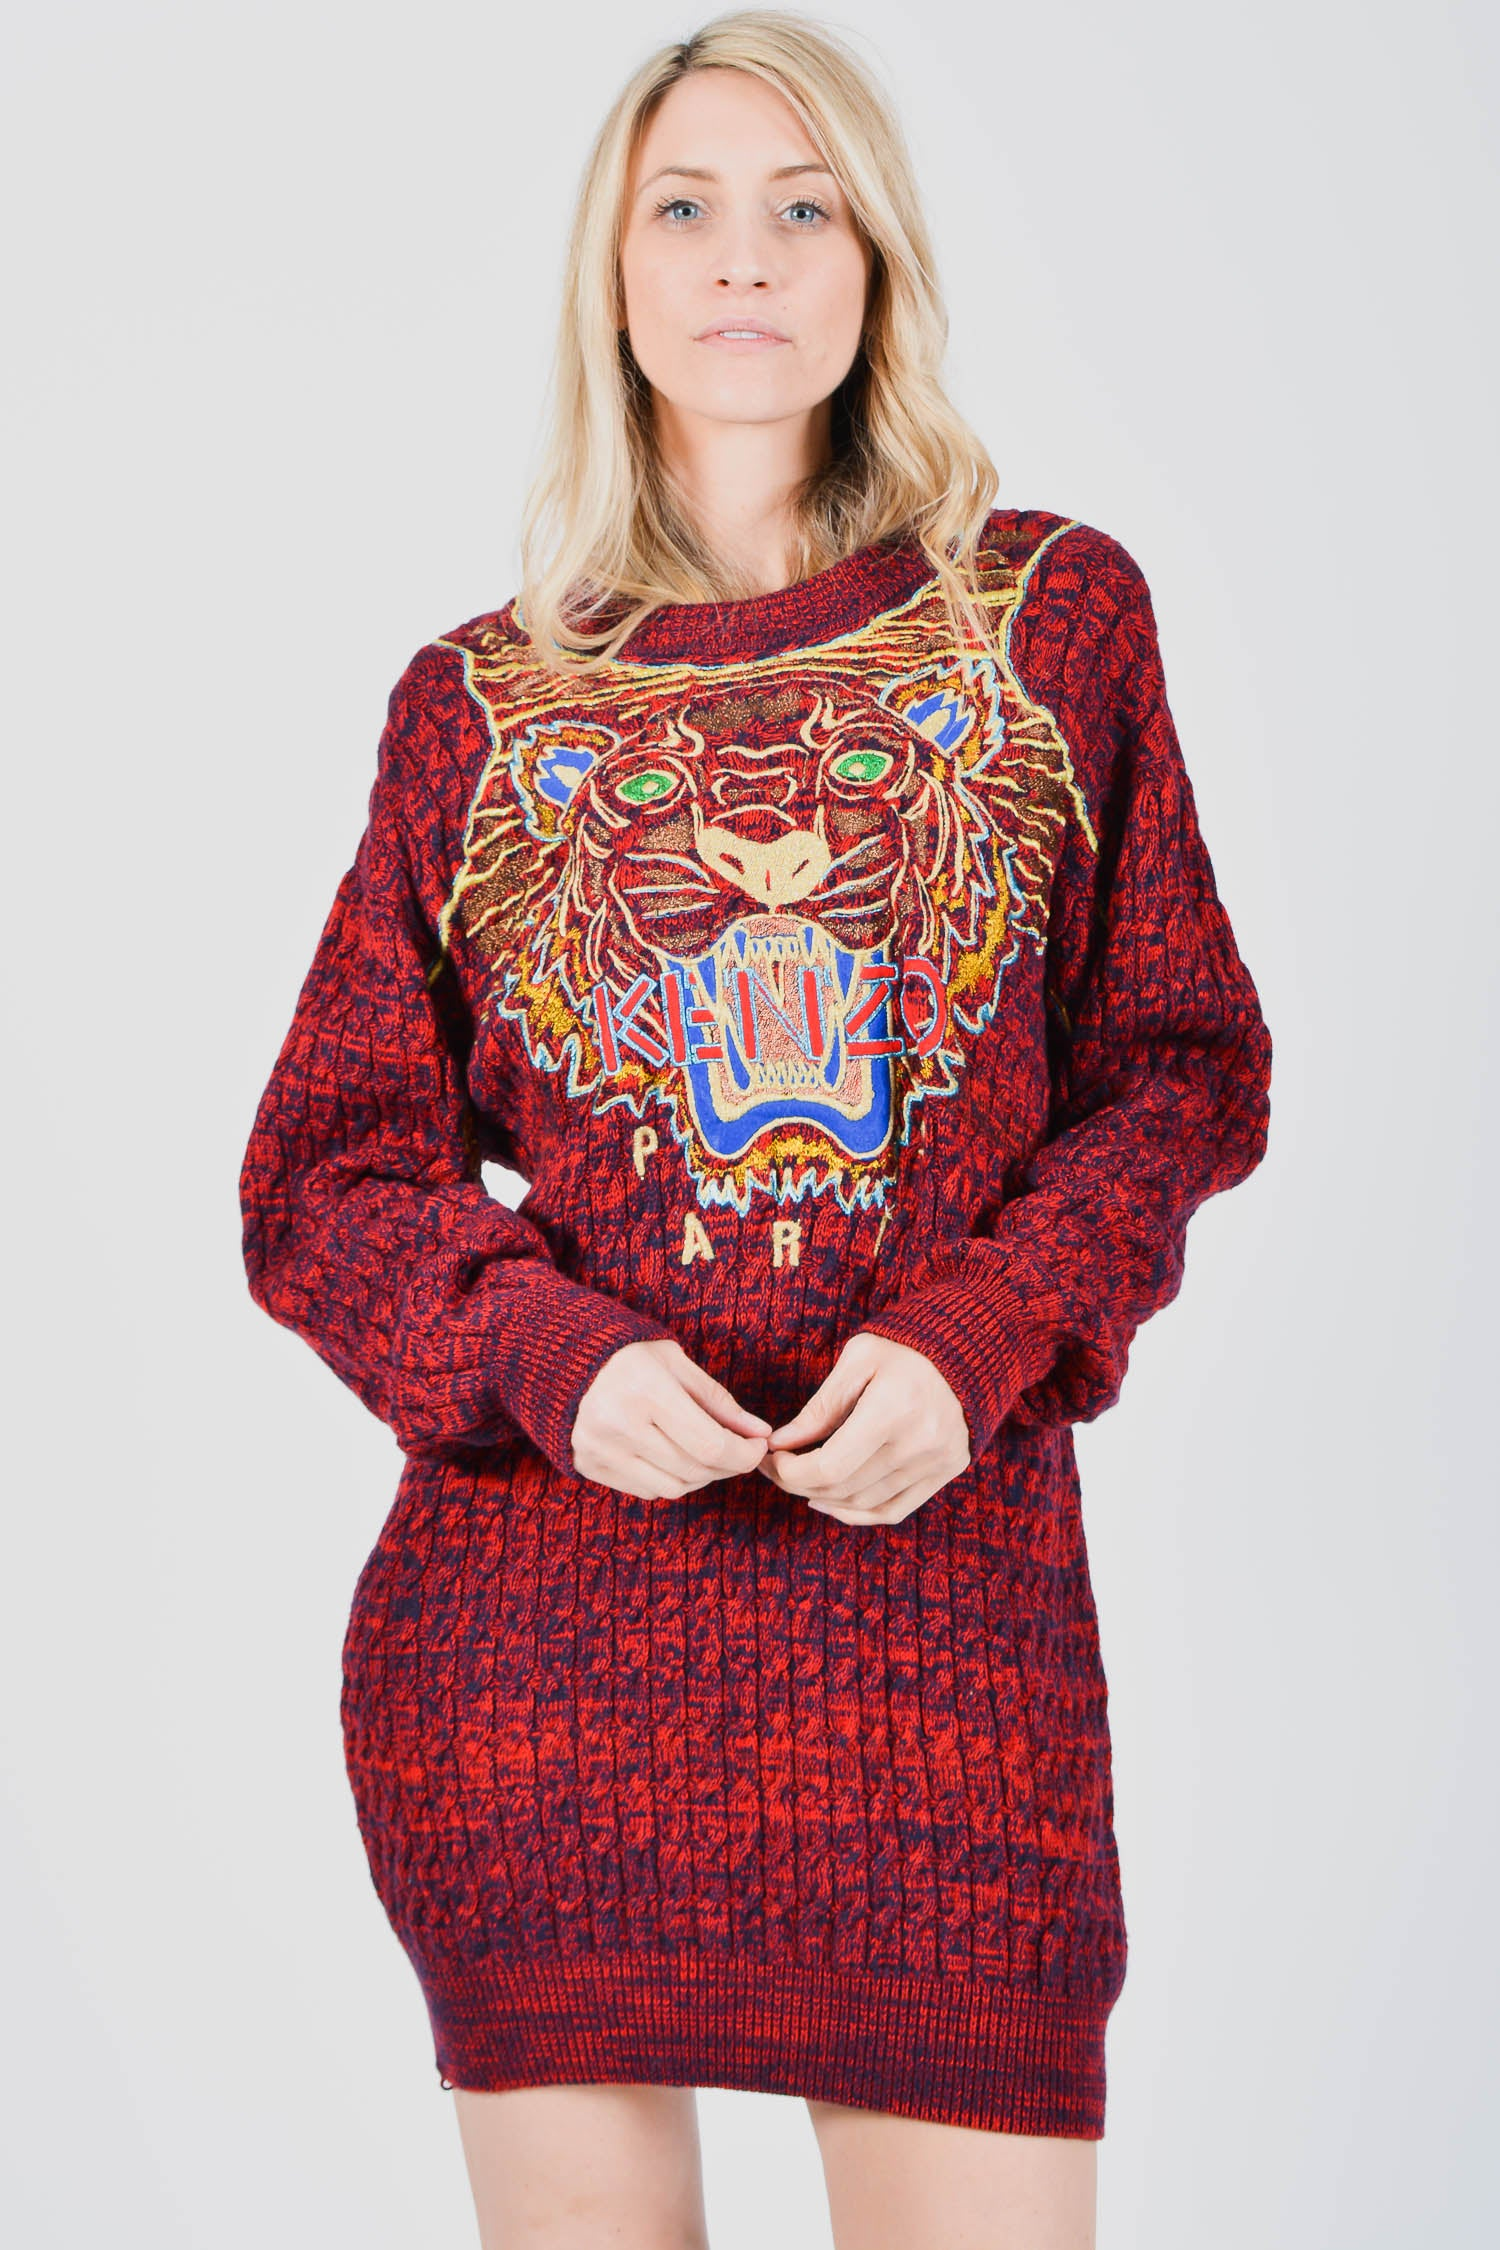 ad24a5083e9 Kenzo Red Tiger Cable Knit Sweater Dress Size L – Mine   Yours ...